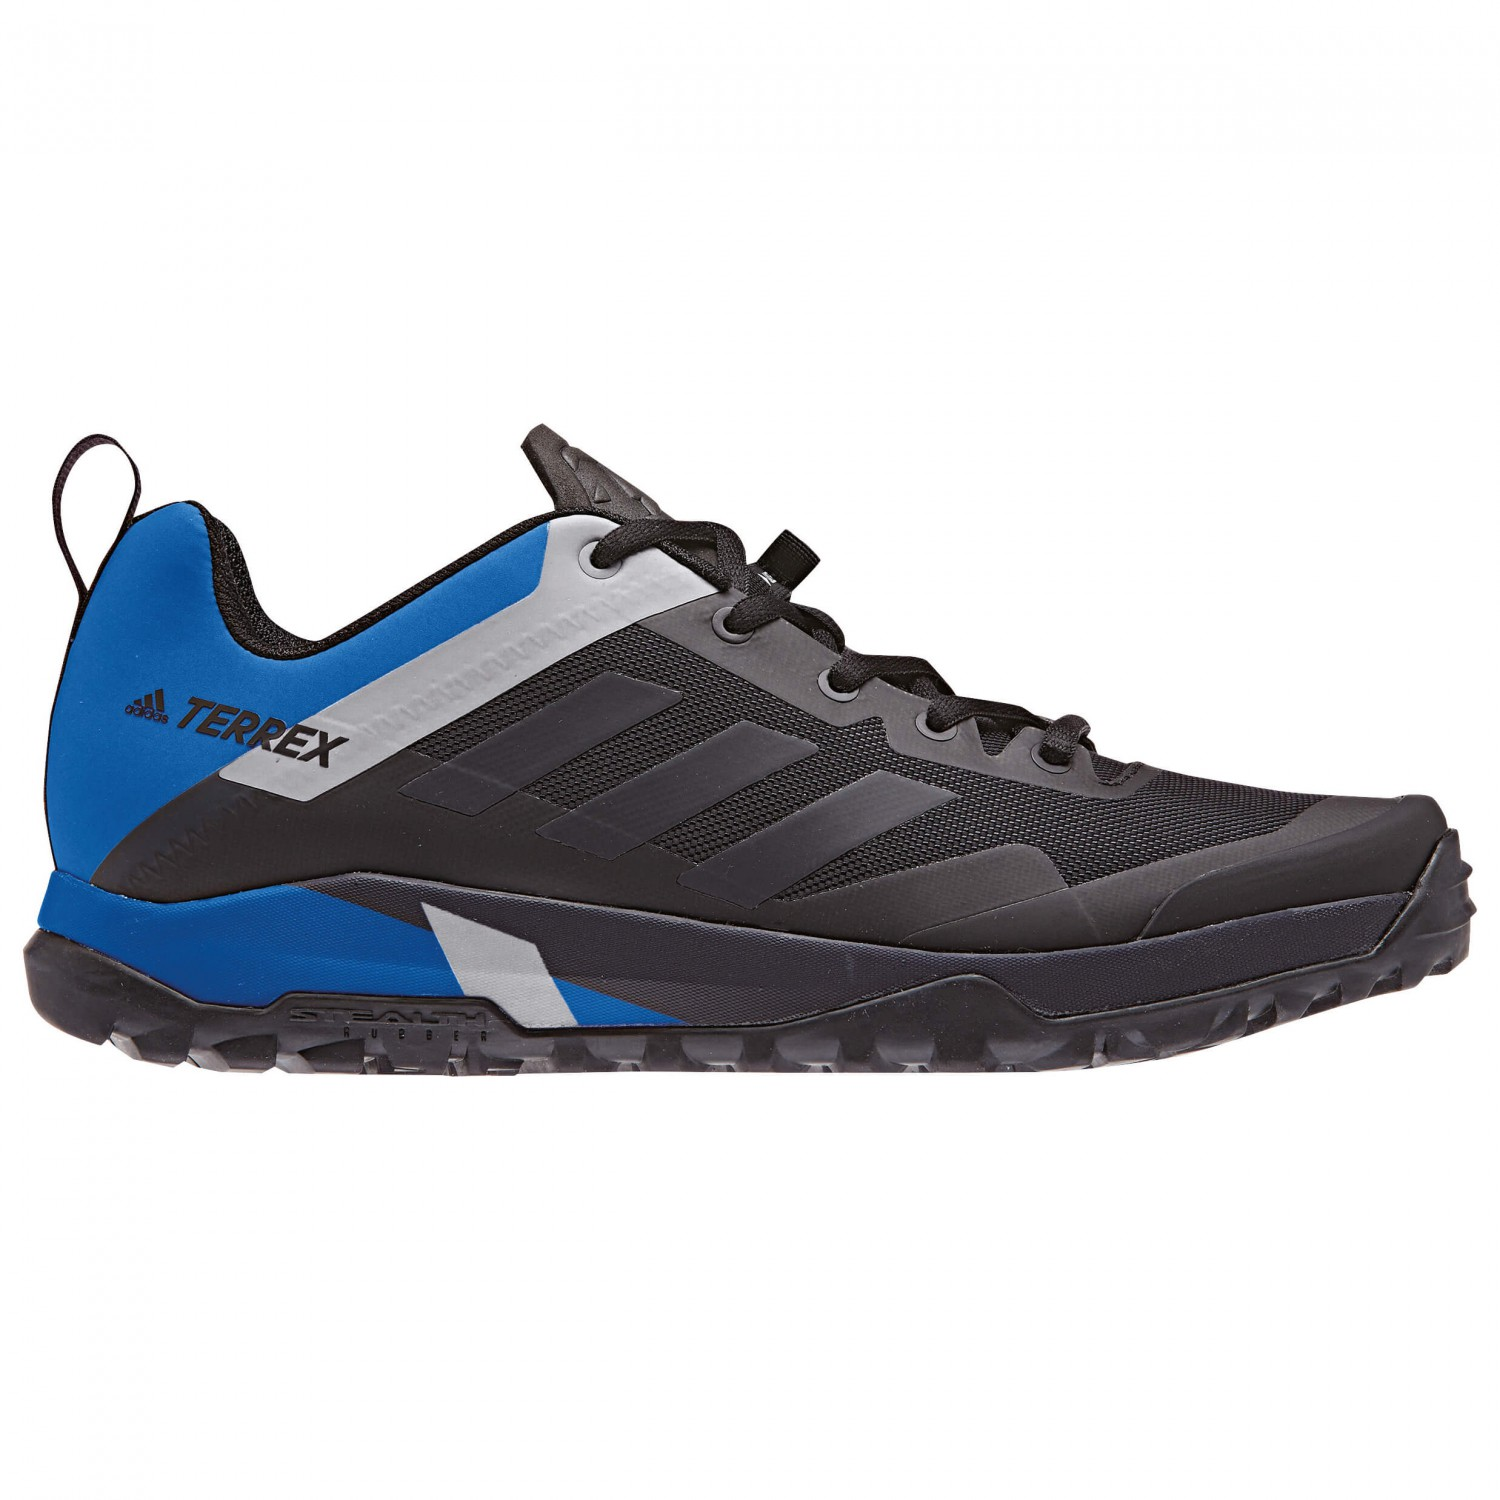 Adidas Mountain Bike Shoes Terrex